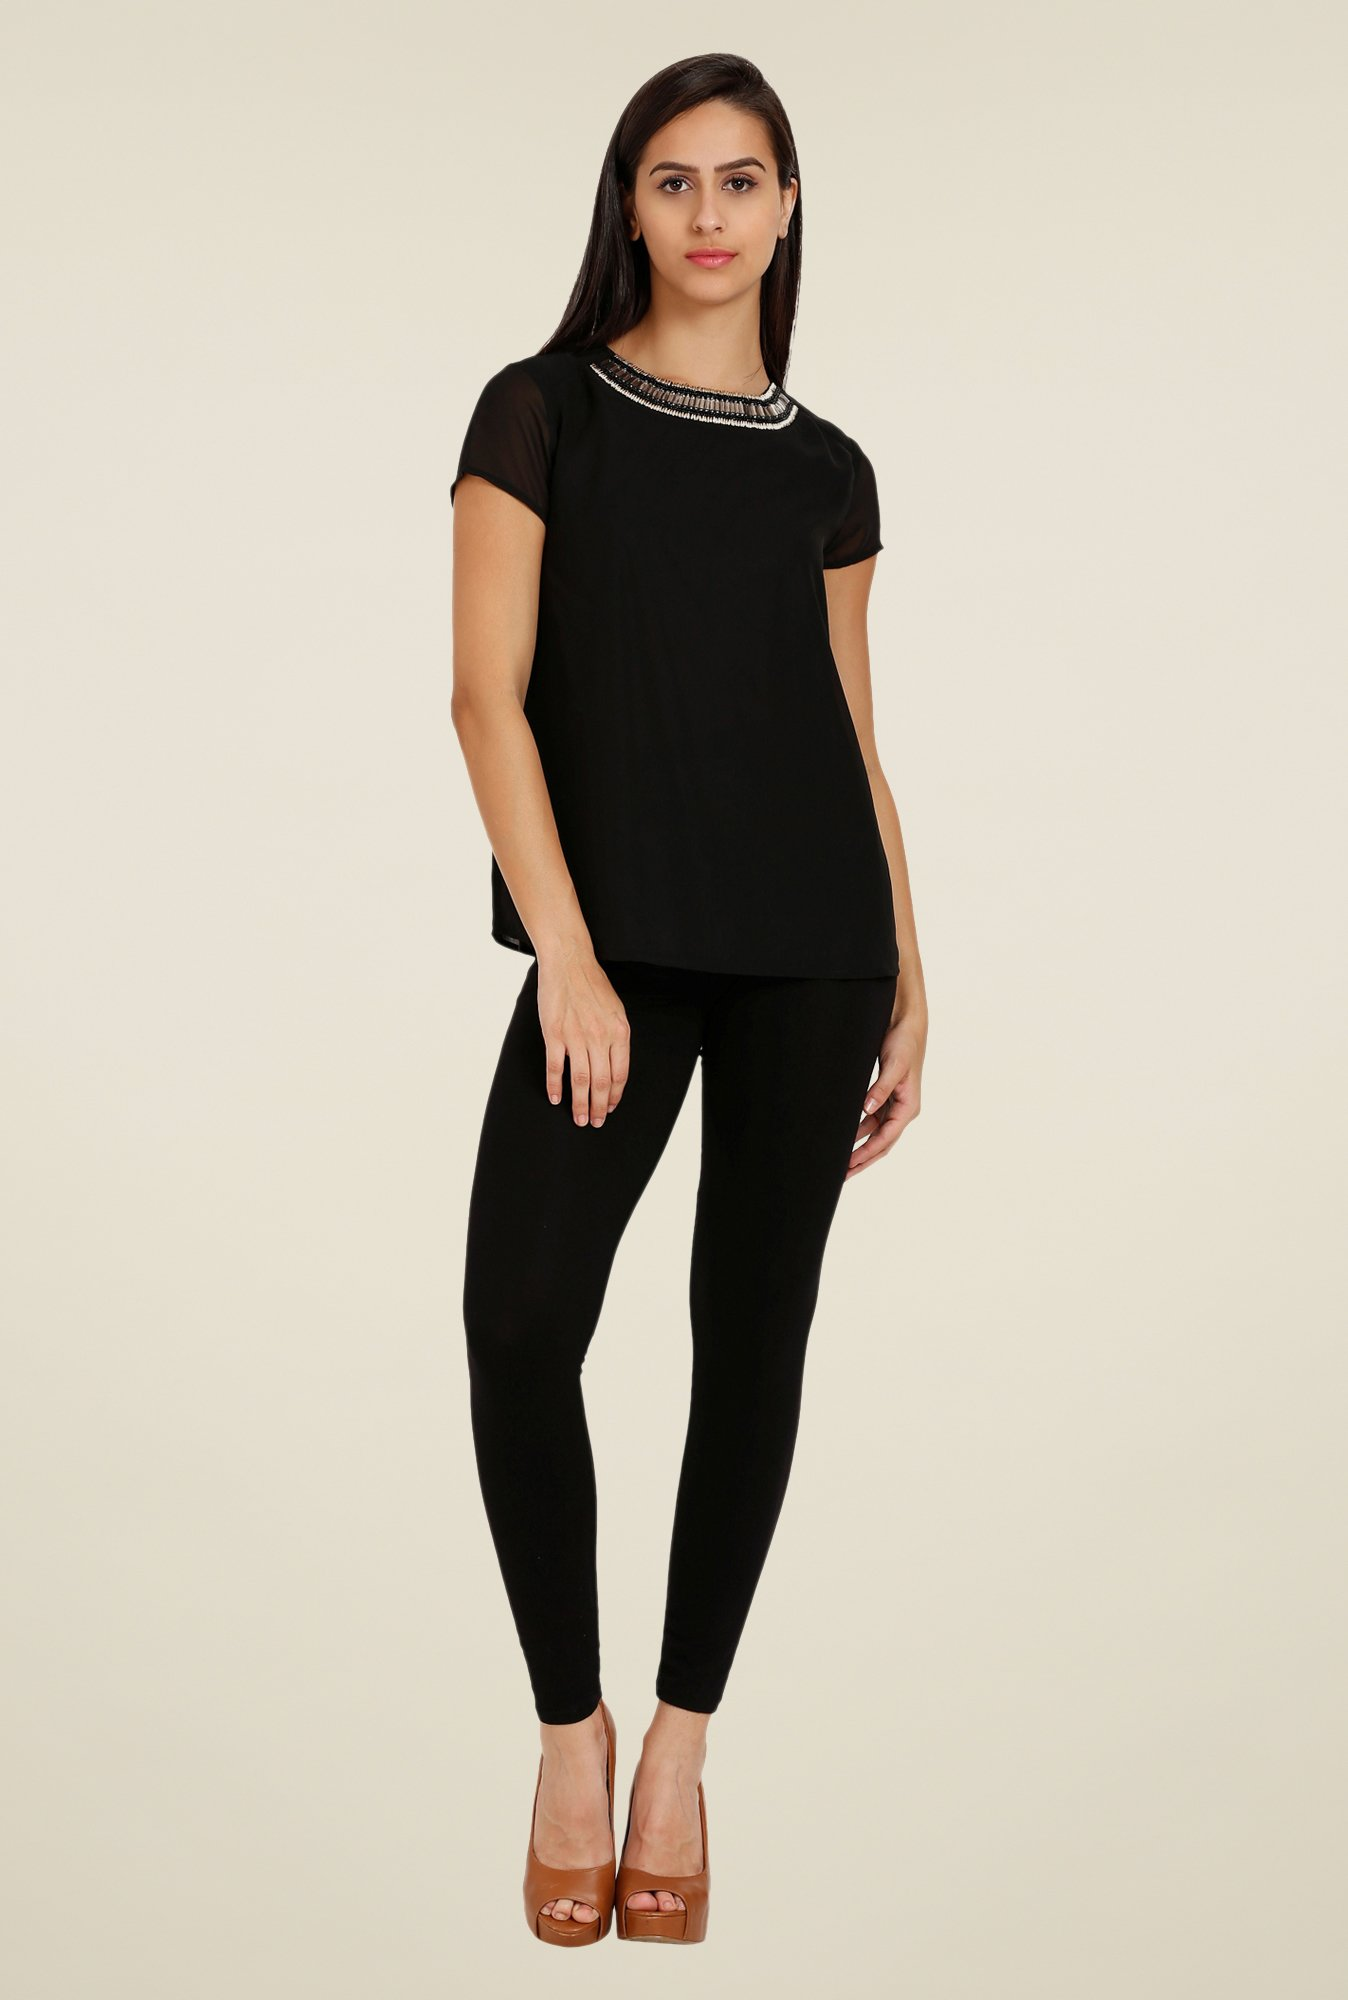 Forever Fashion Black Solid Top